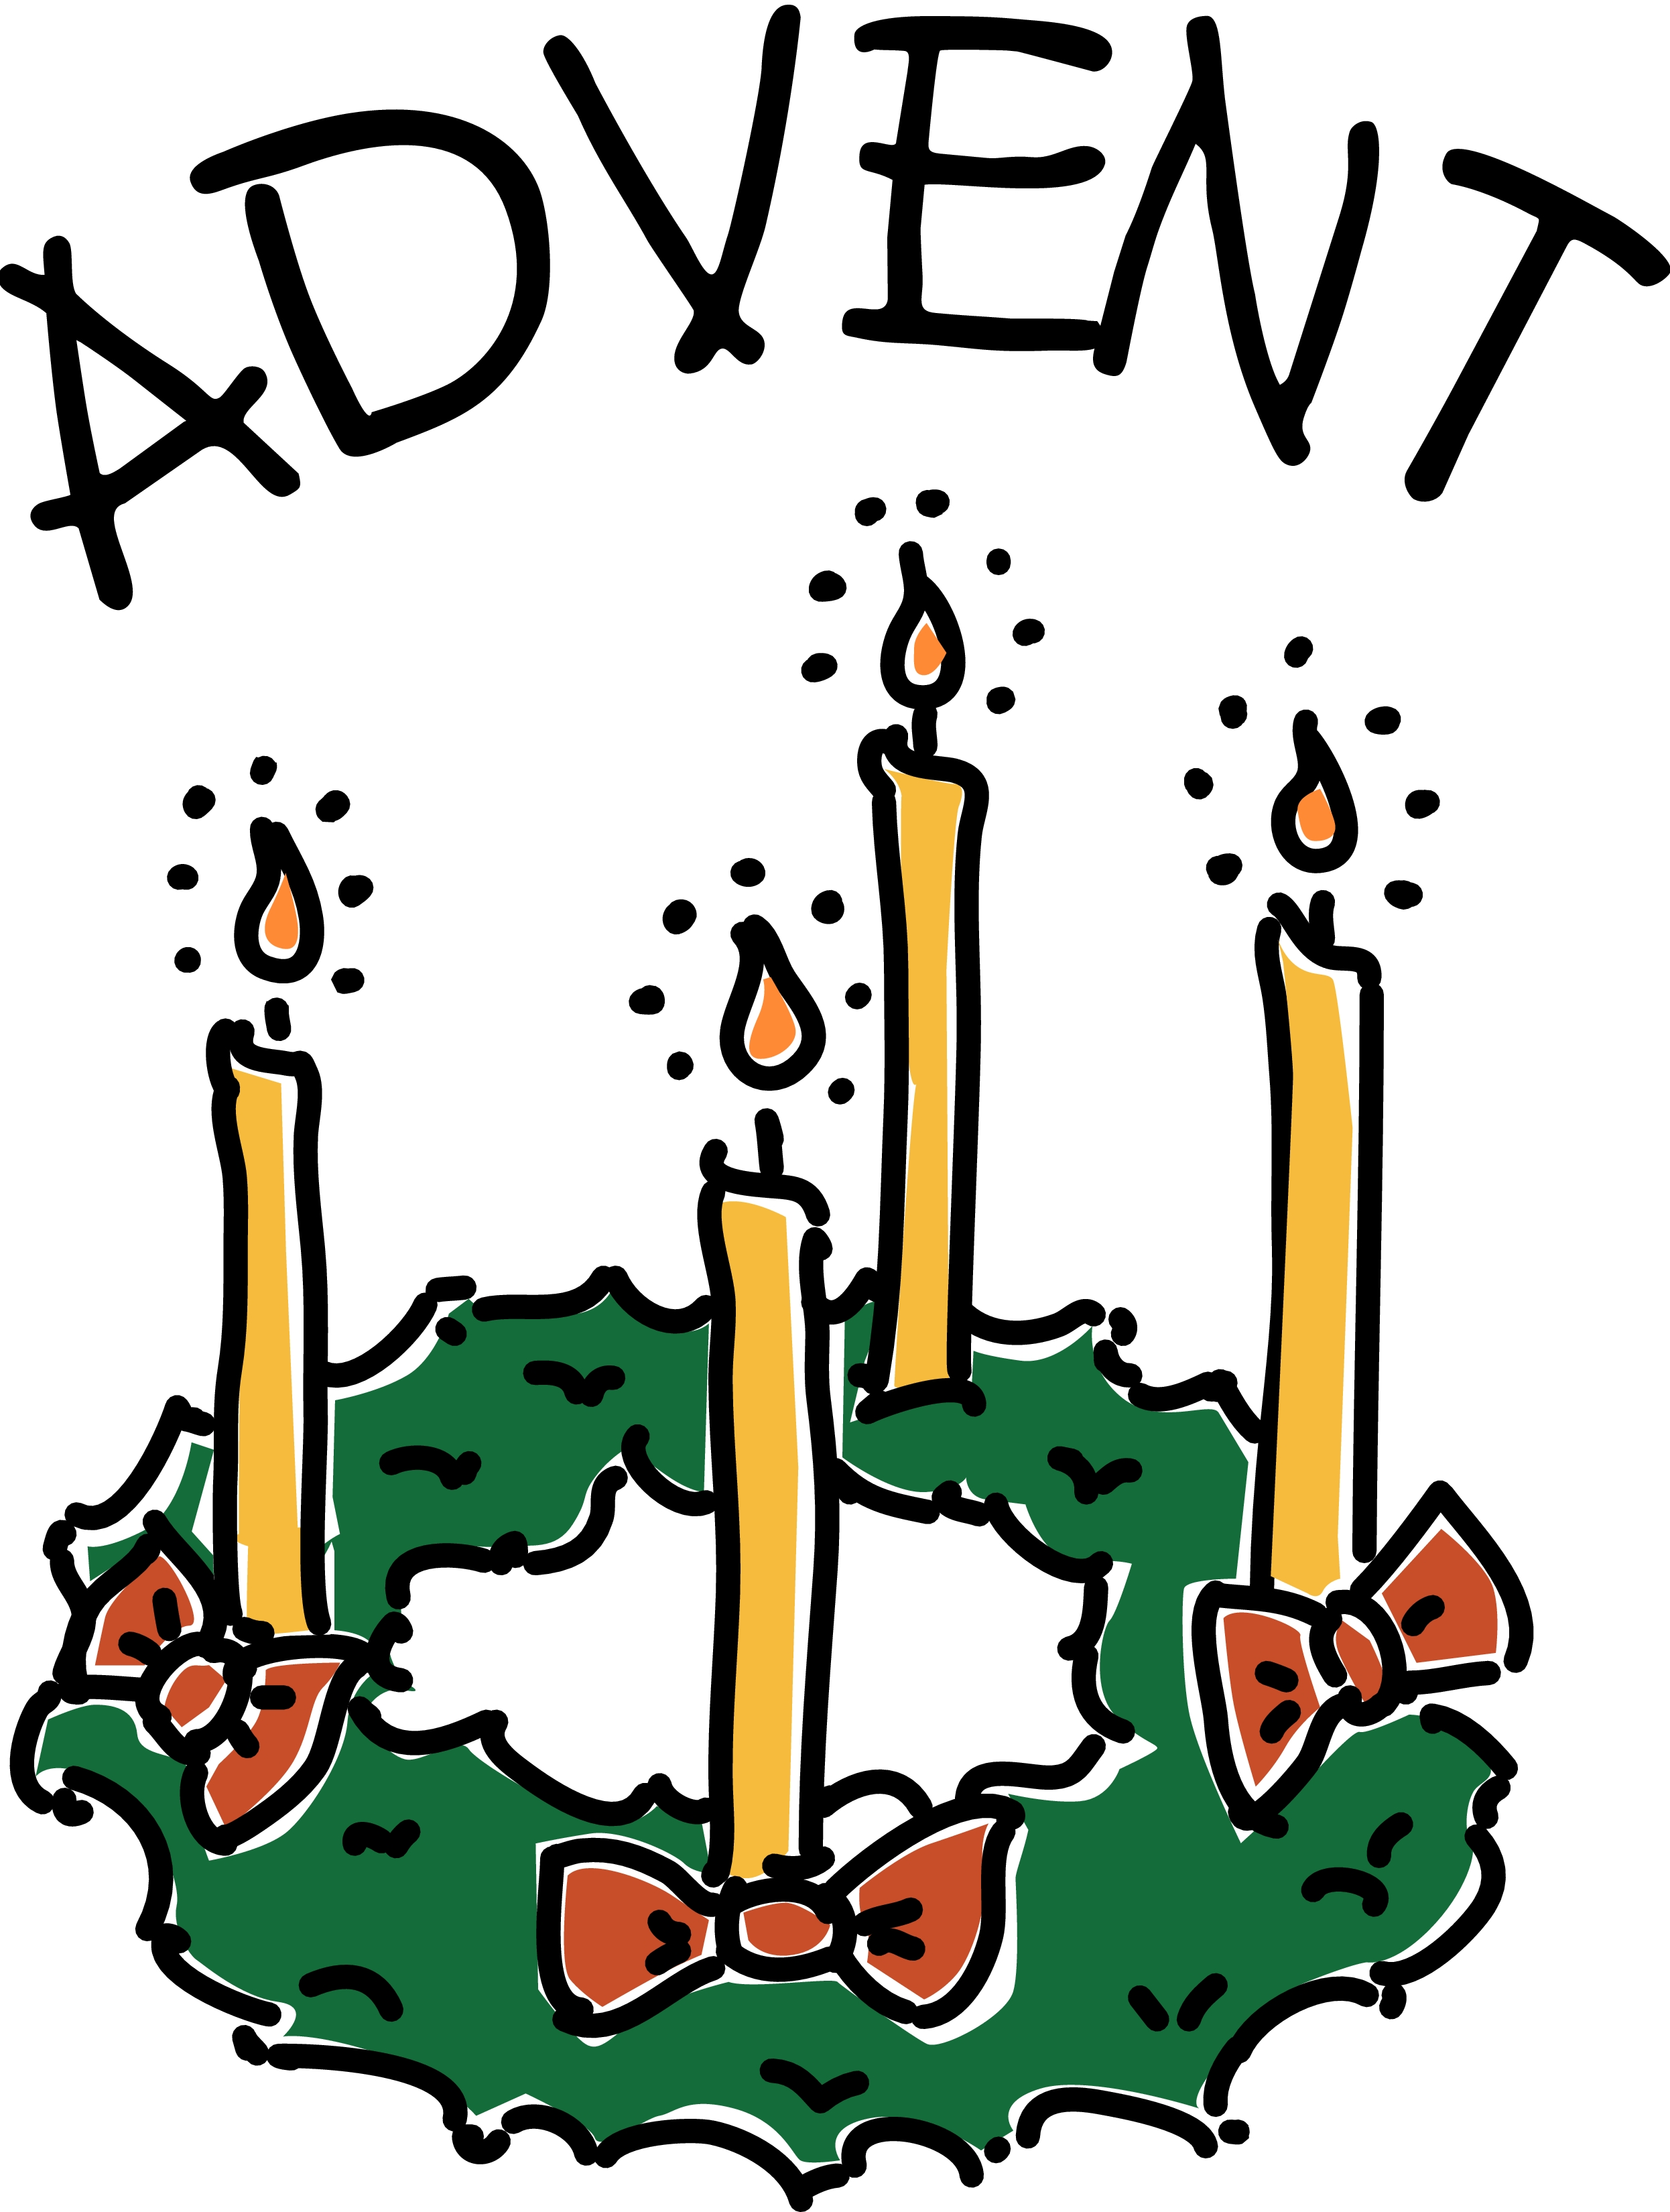 Clip Art Advent Clipart advent candles clipart kid archidioc se de moncton calendar